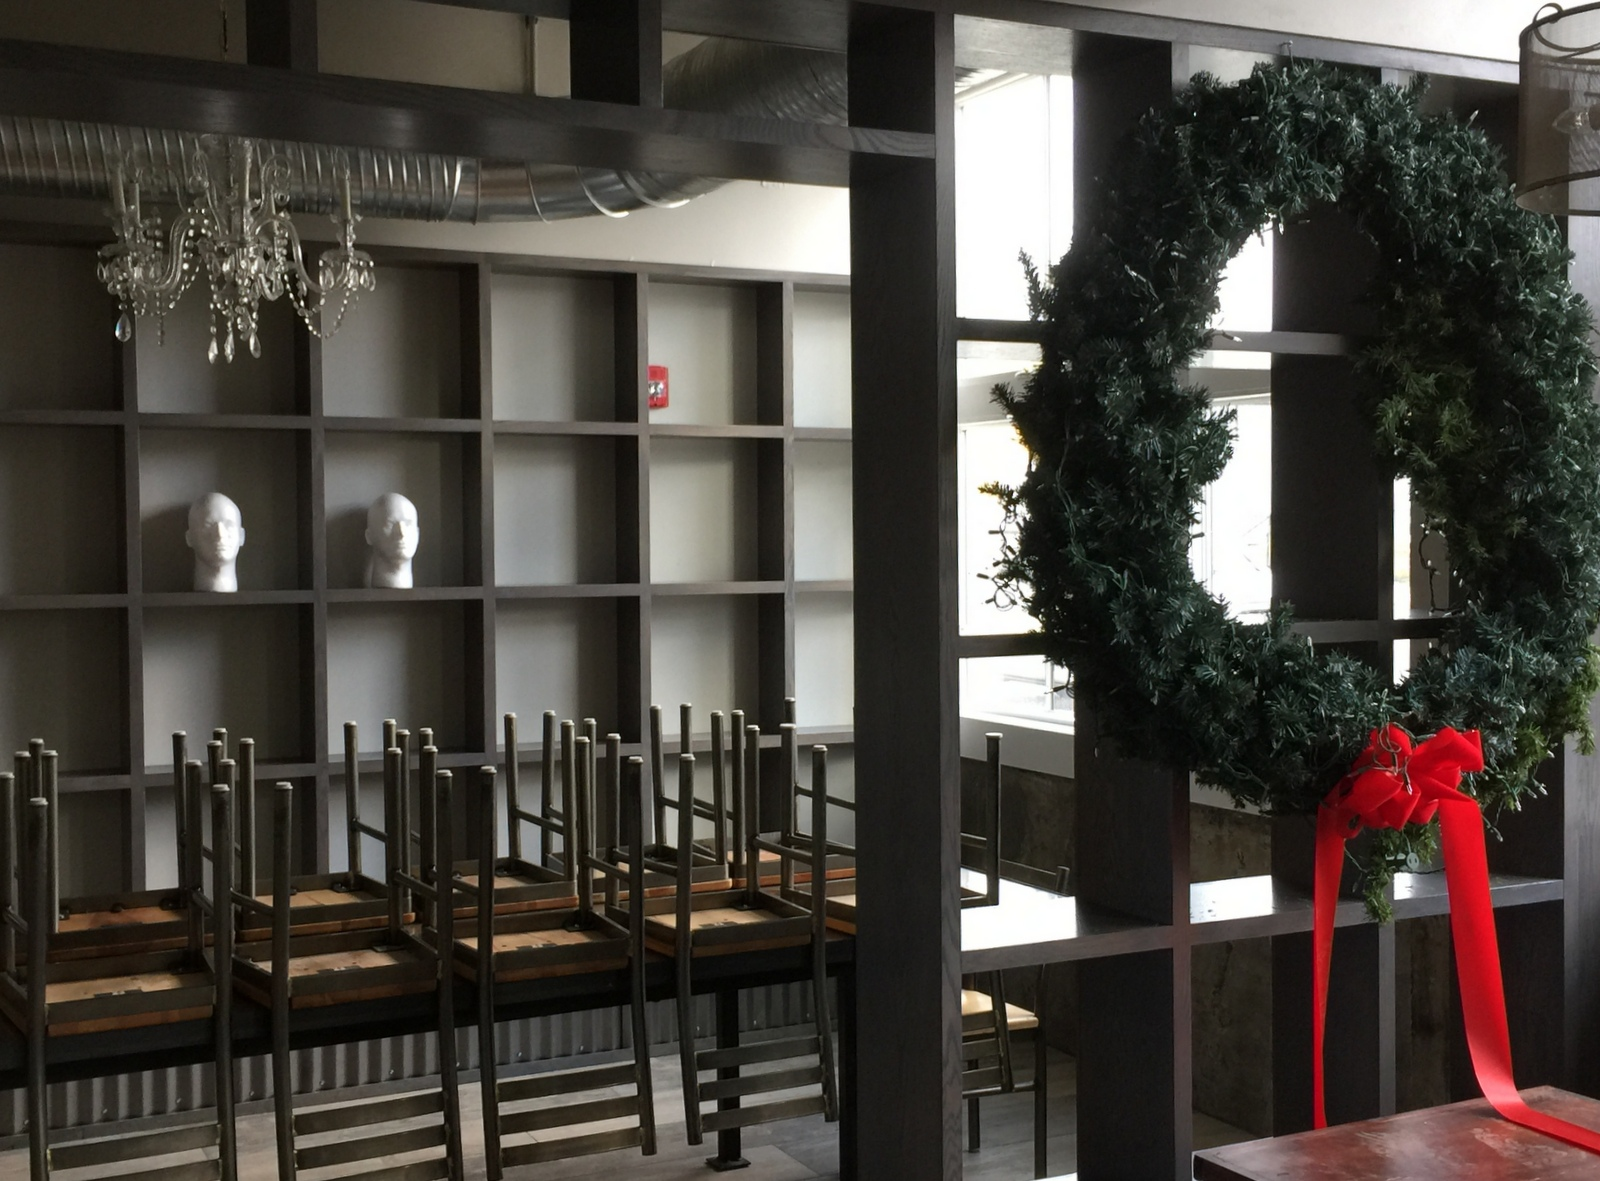 Accomodations at Roost include a semi-private dining room. (Andrew Galarneau/Buffalo News)